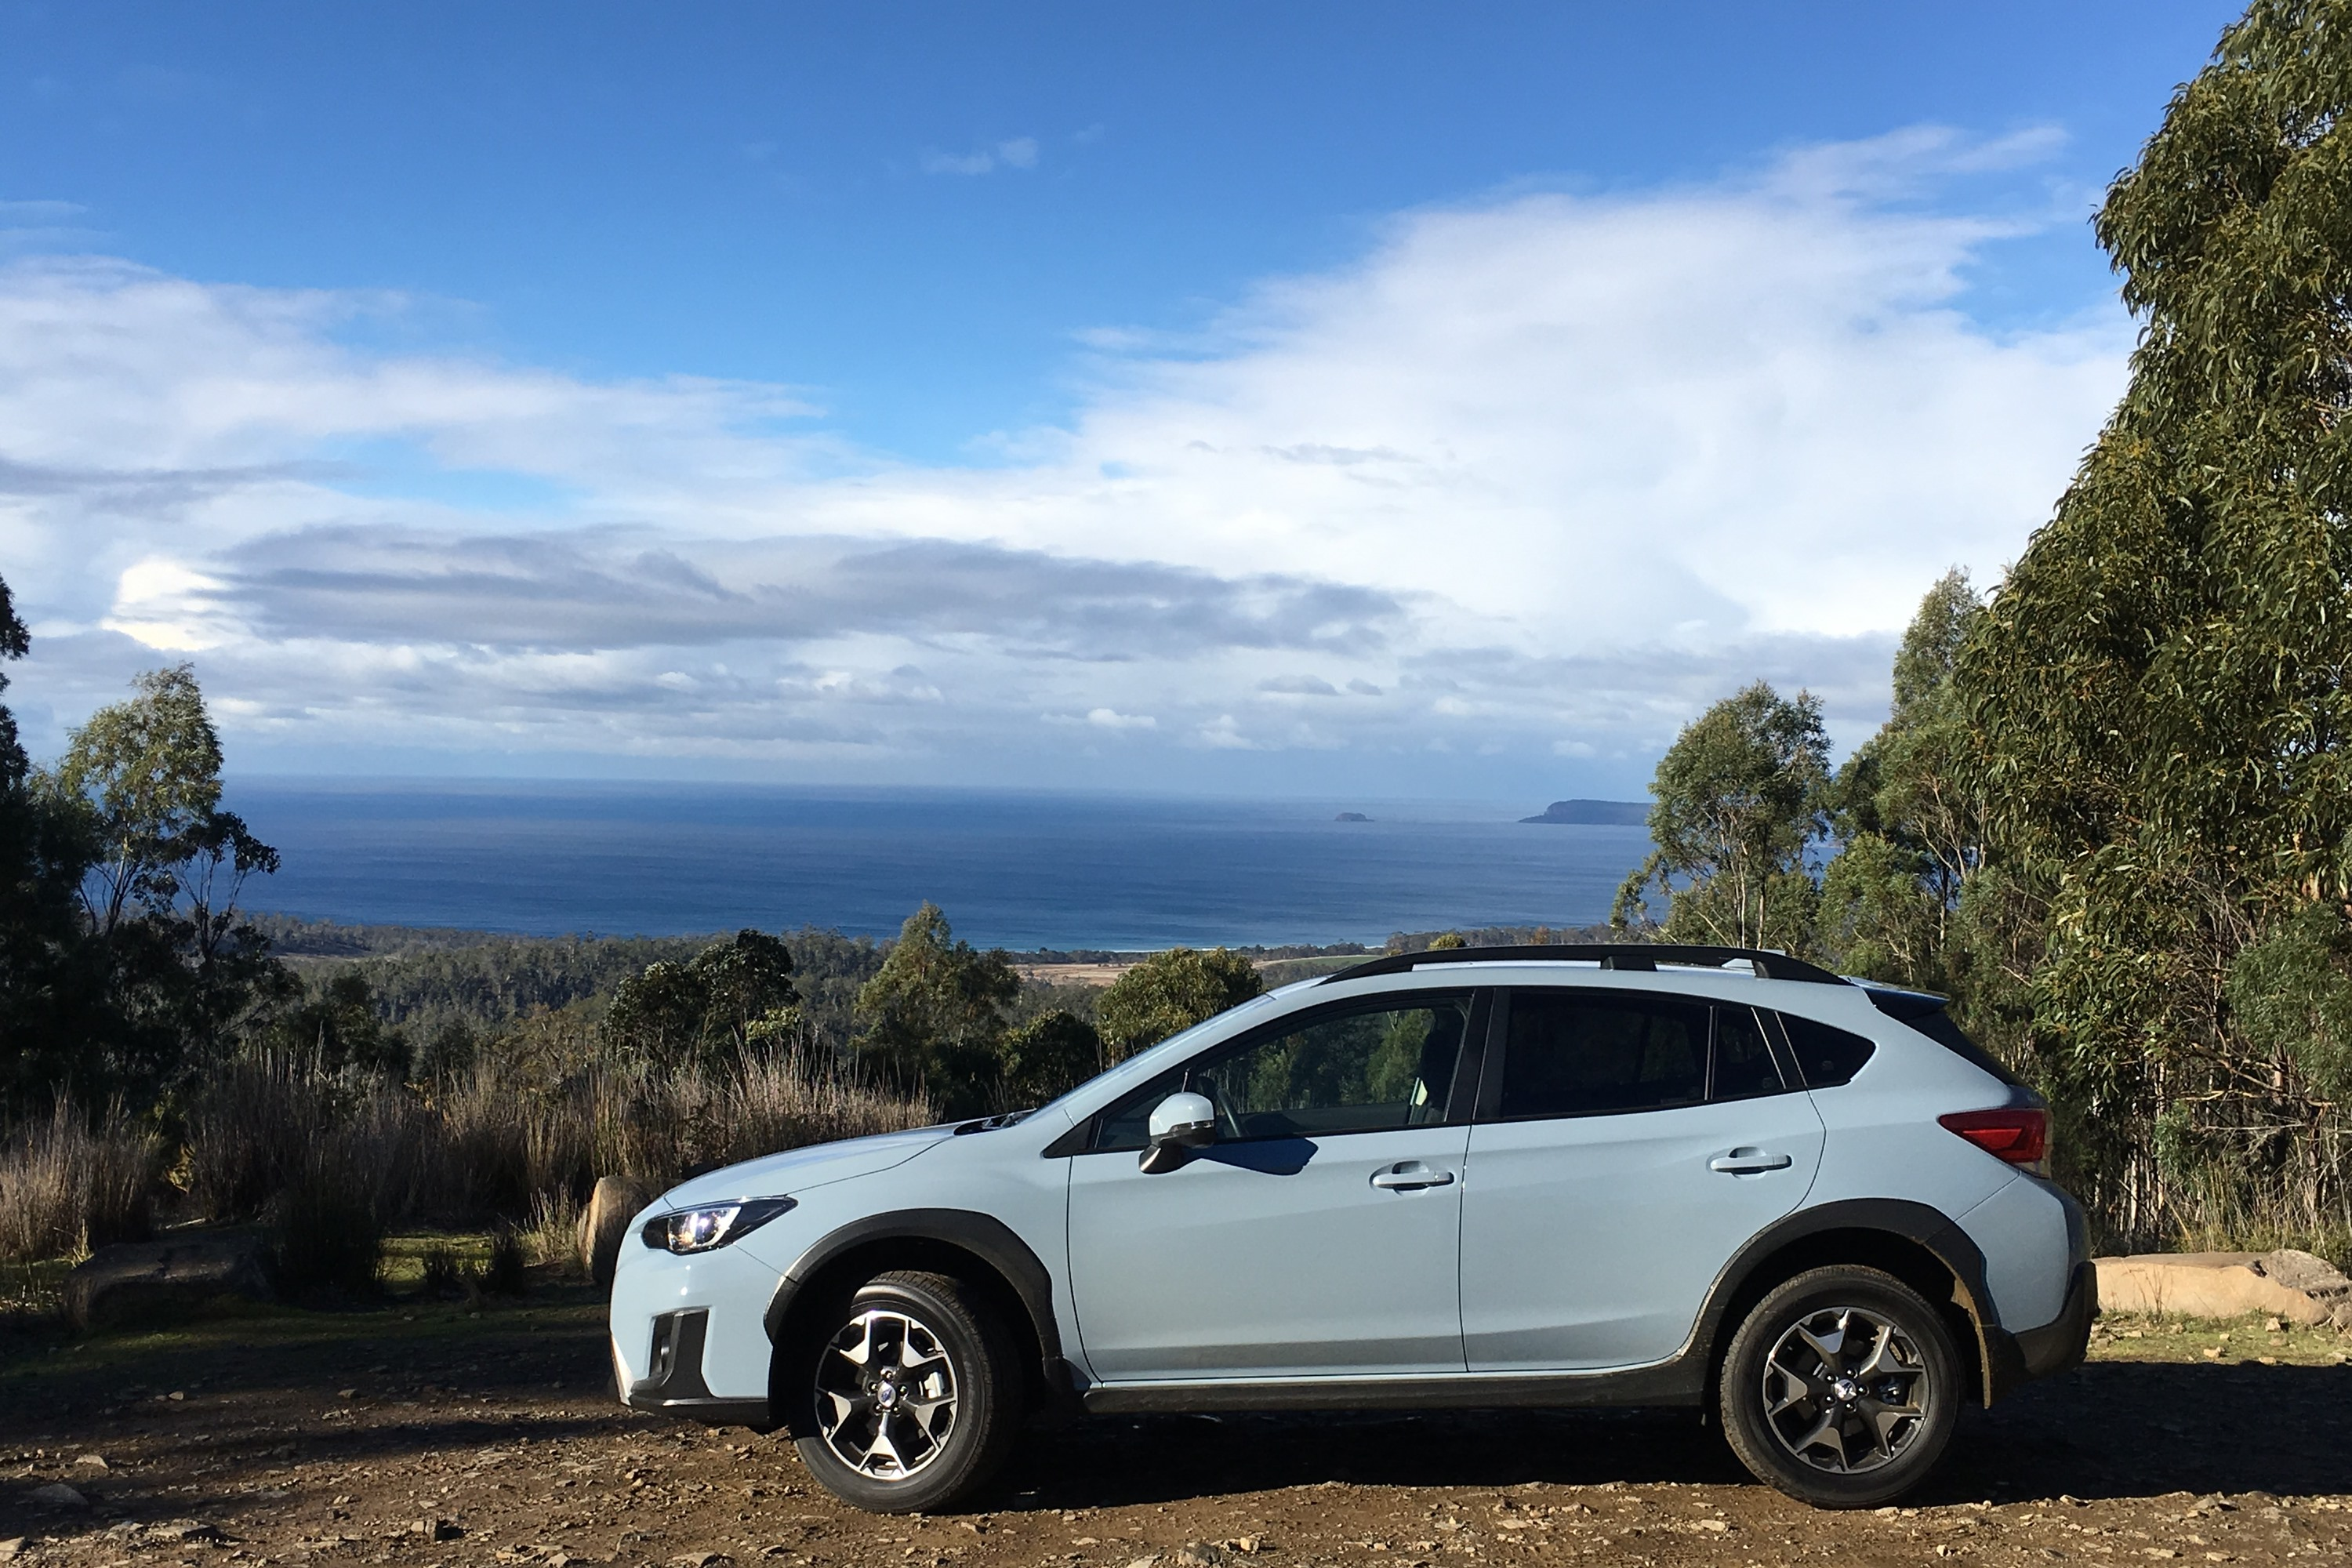 2019 Subaru Tasmania drive coastal views 2